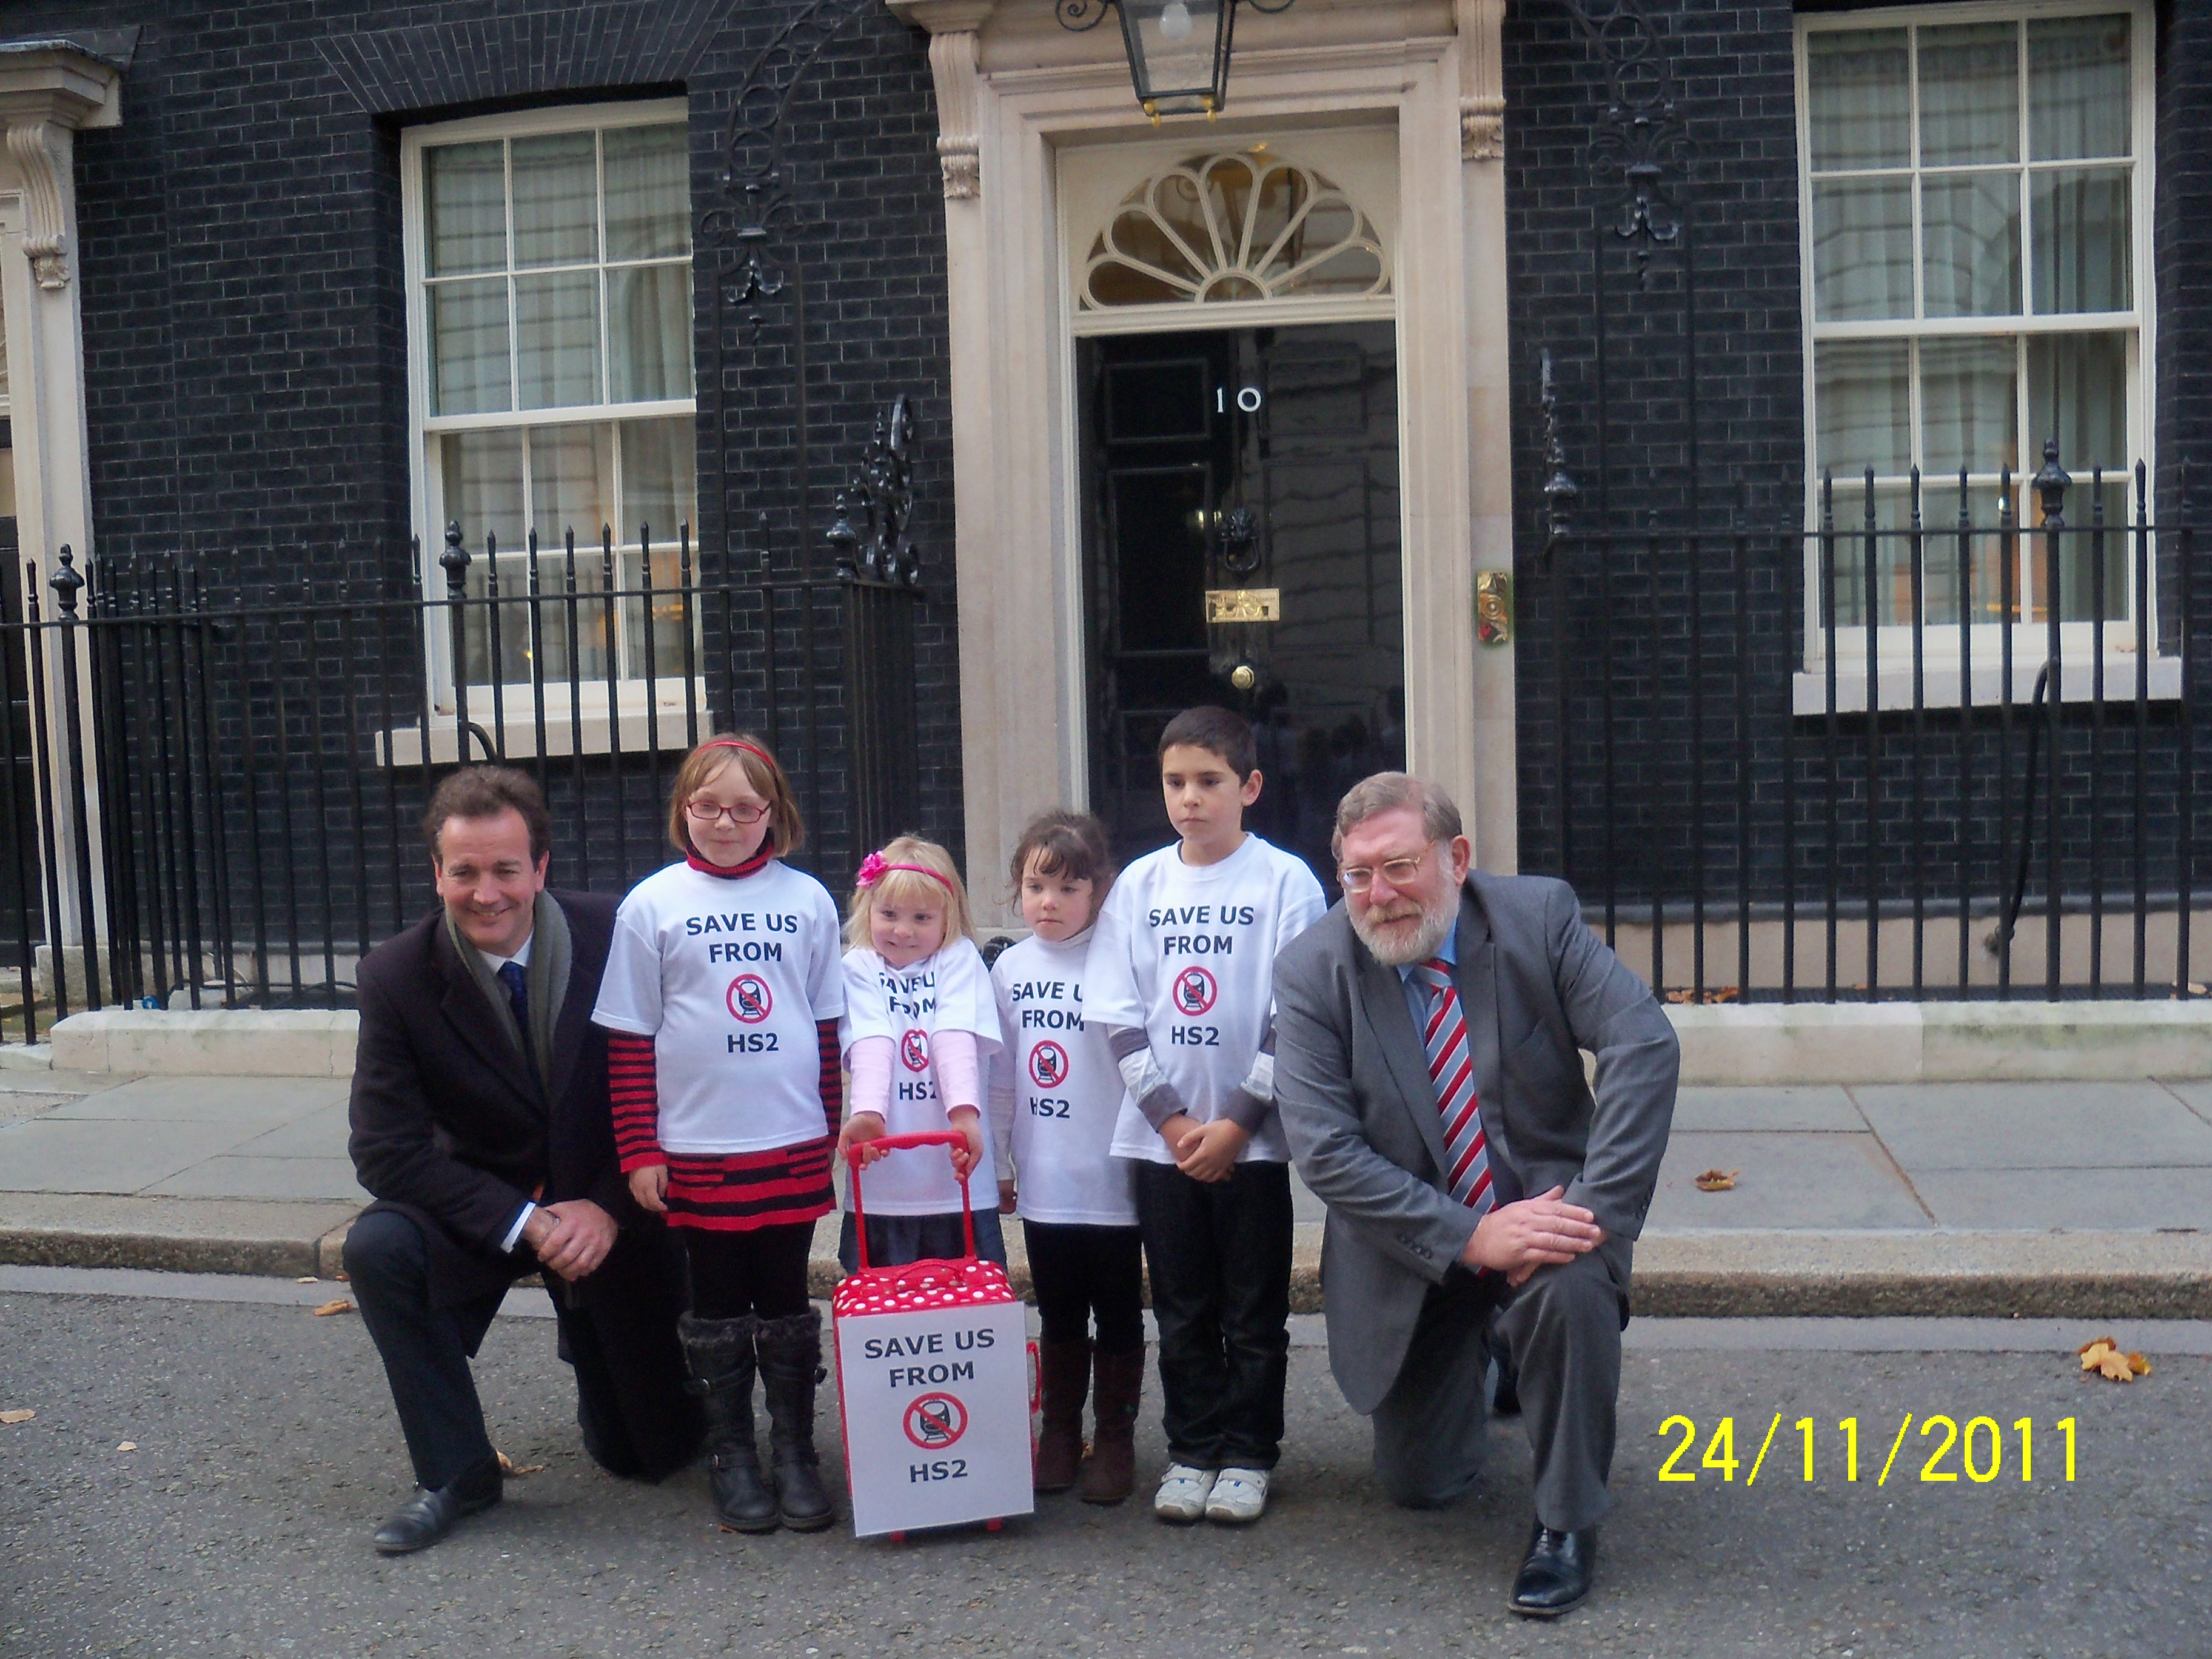 John Randall MP and Nick Hurd MP help deliver the kids 'Save us from HS2' petition to Downing St